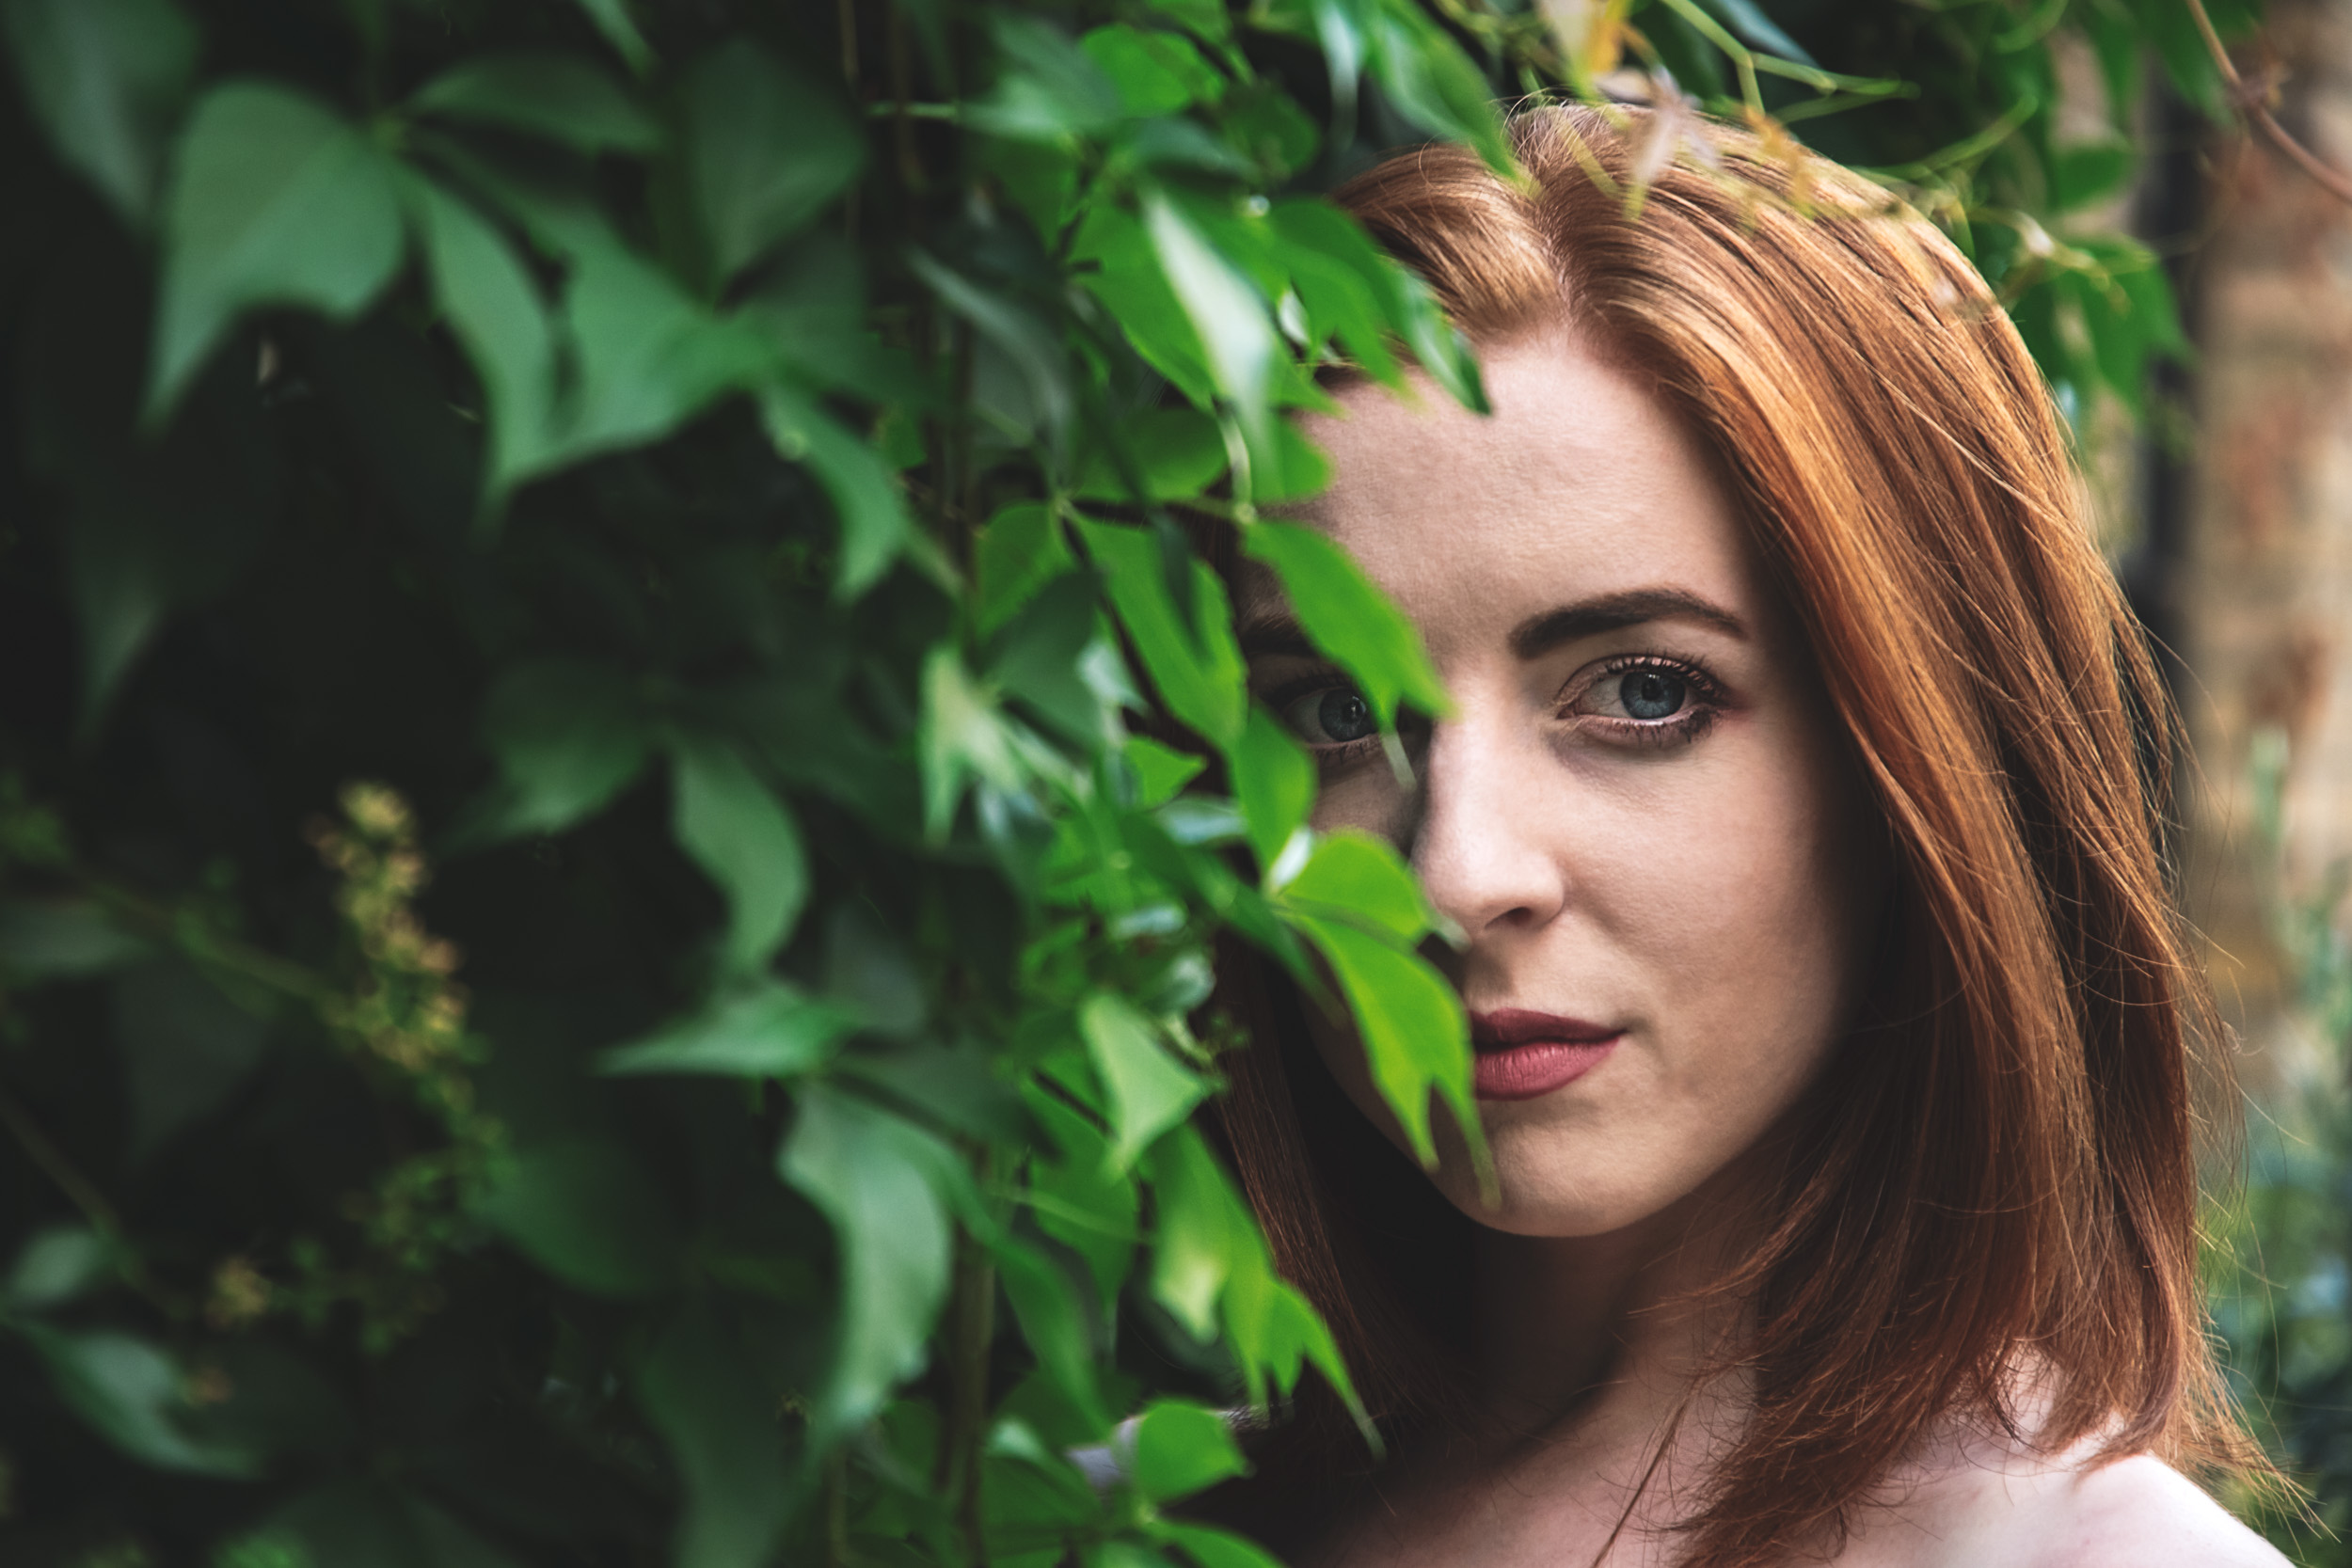 EllaRae-19Jul2018-091-Edit-Edit.jpg